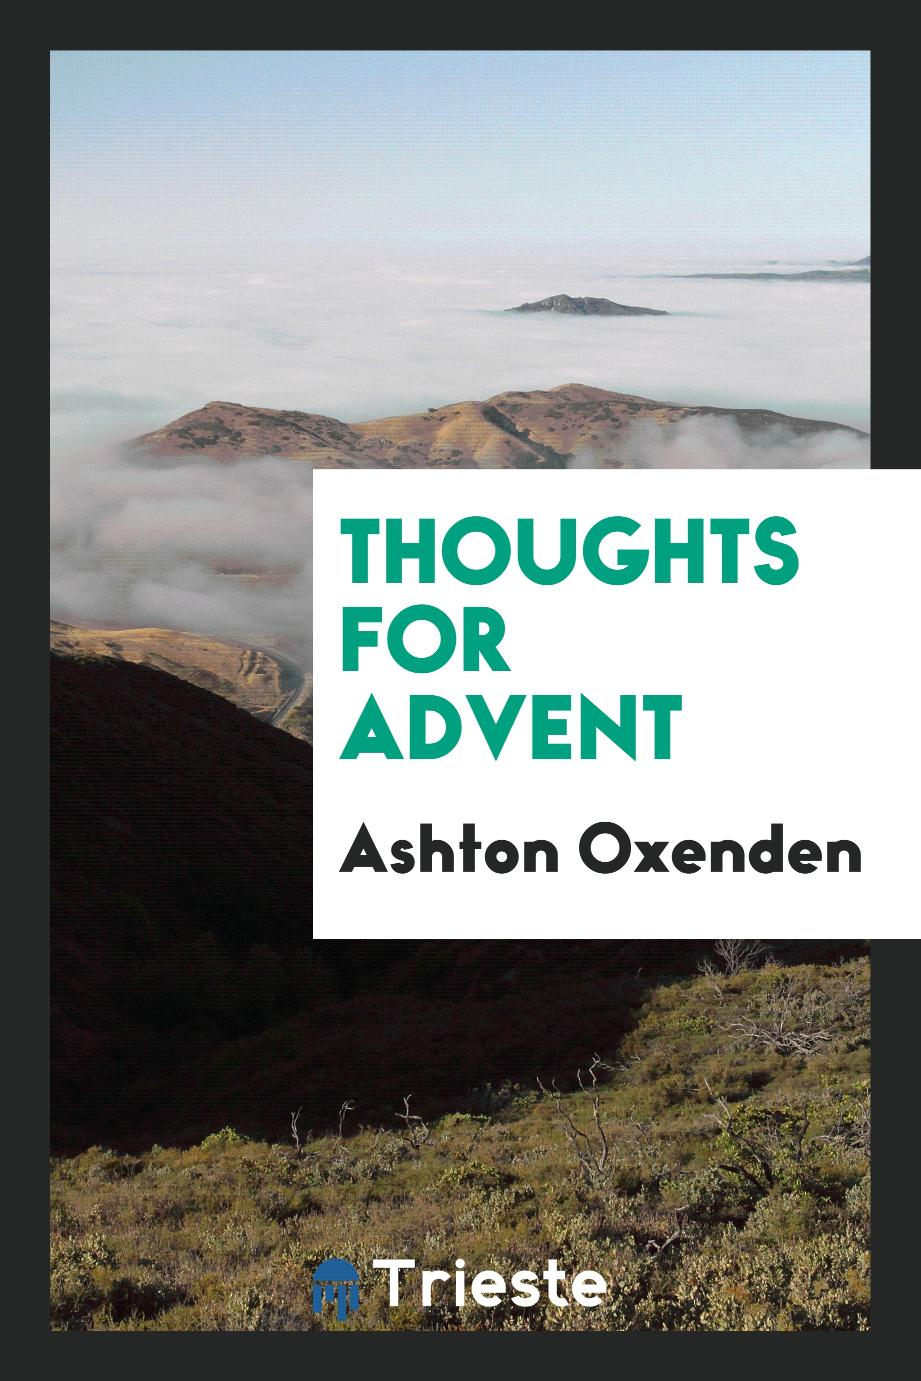 Thoughts for Advent